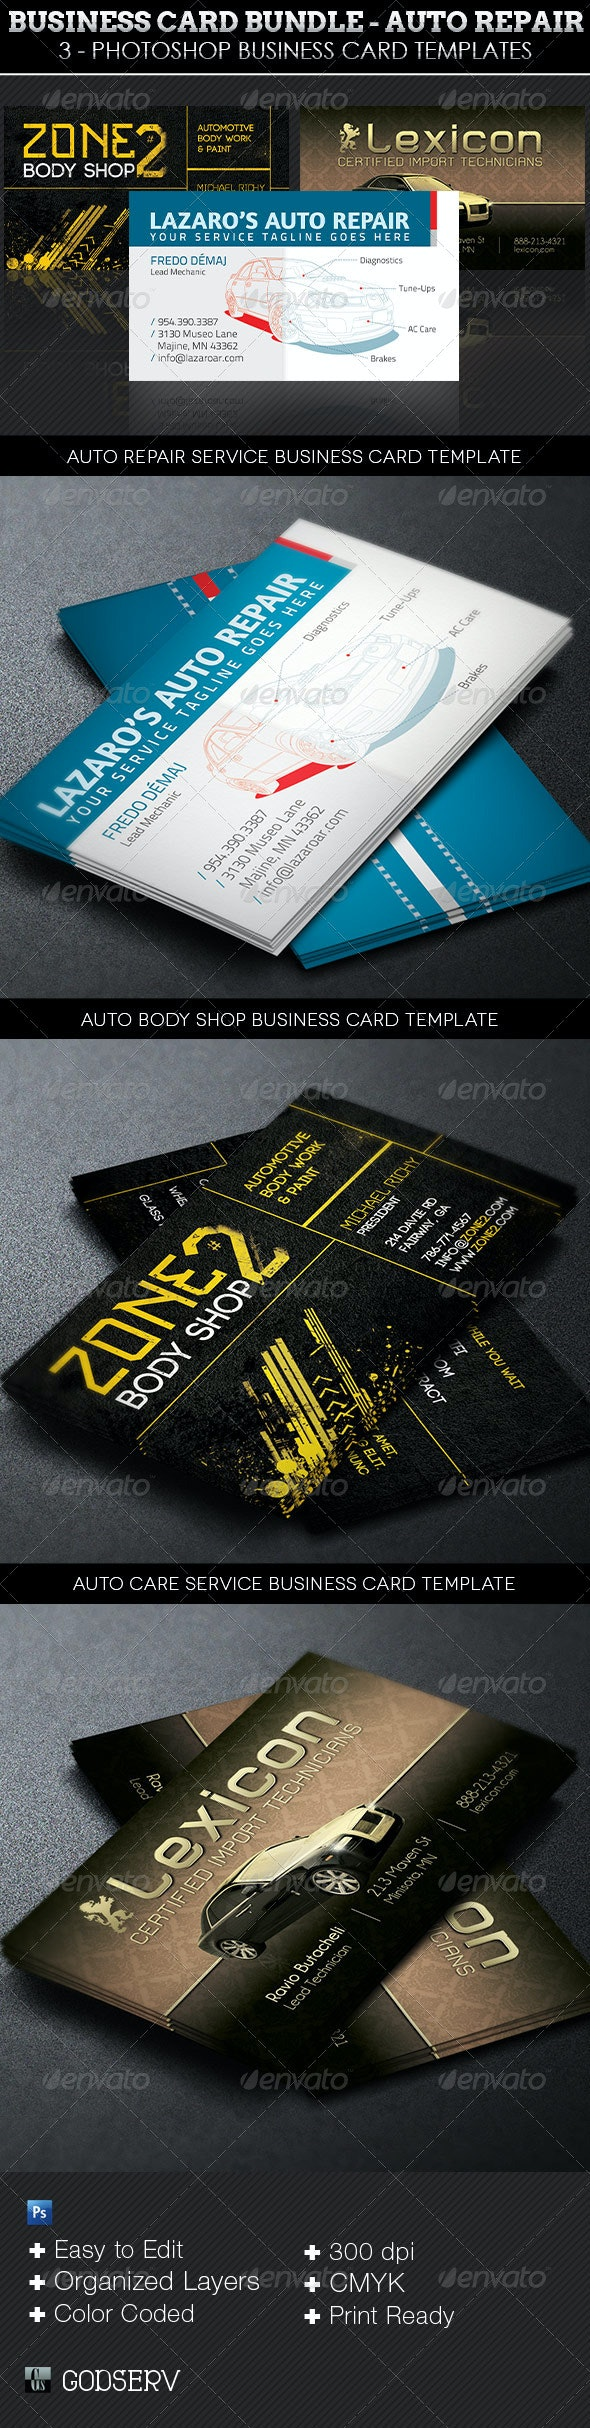 Auto Repair Business Card Template Bundle - Industry Specific Business Cards